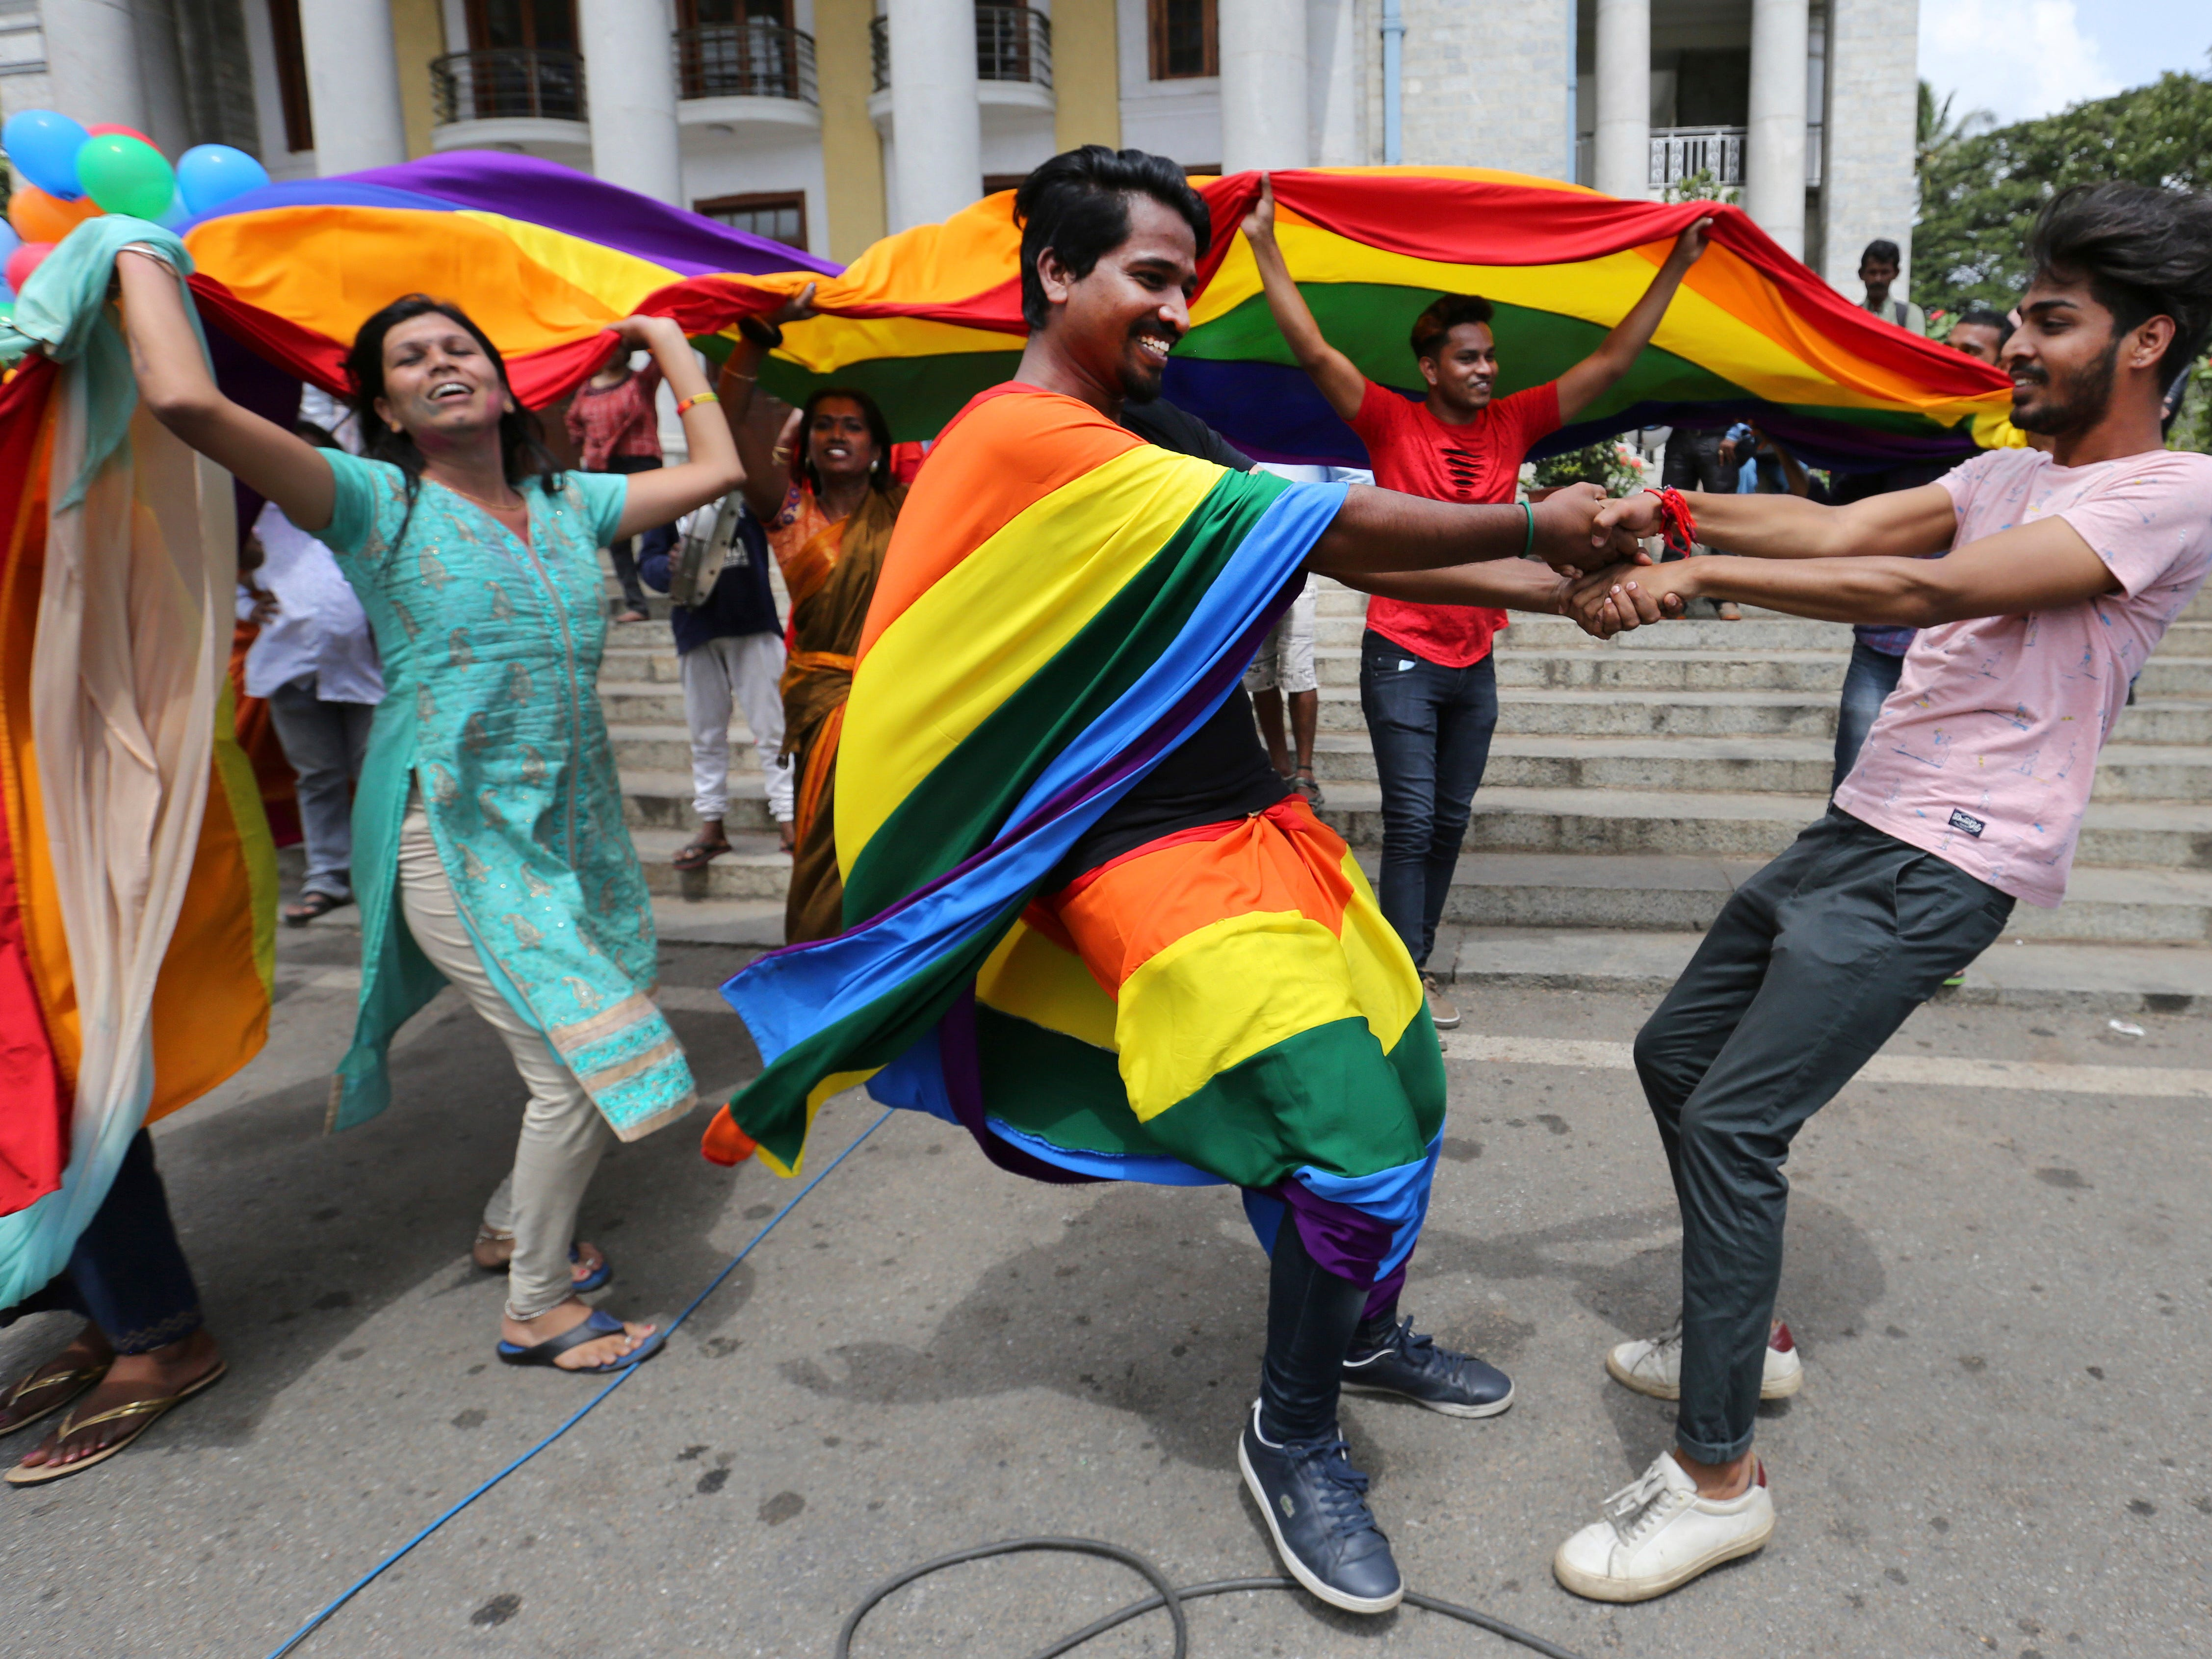 Members of the LGBT celebrate Thursday in Bangalore, India, after the country's top court struck down a colonial-era law that made homosexual acts punishable by up to 10 years in prison. The court gave its ruling on a petition filed by five people who challenged the law, saying they are living in fear of being harassed and prosecuted by police.